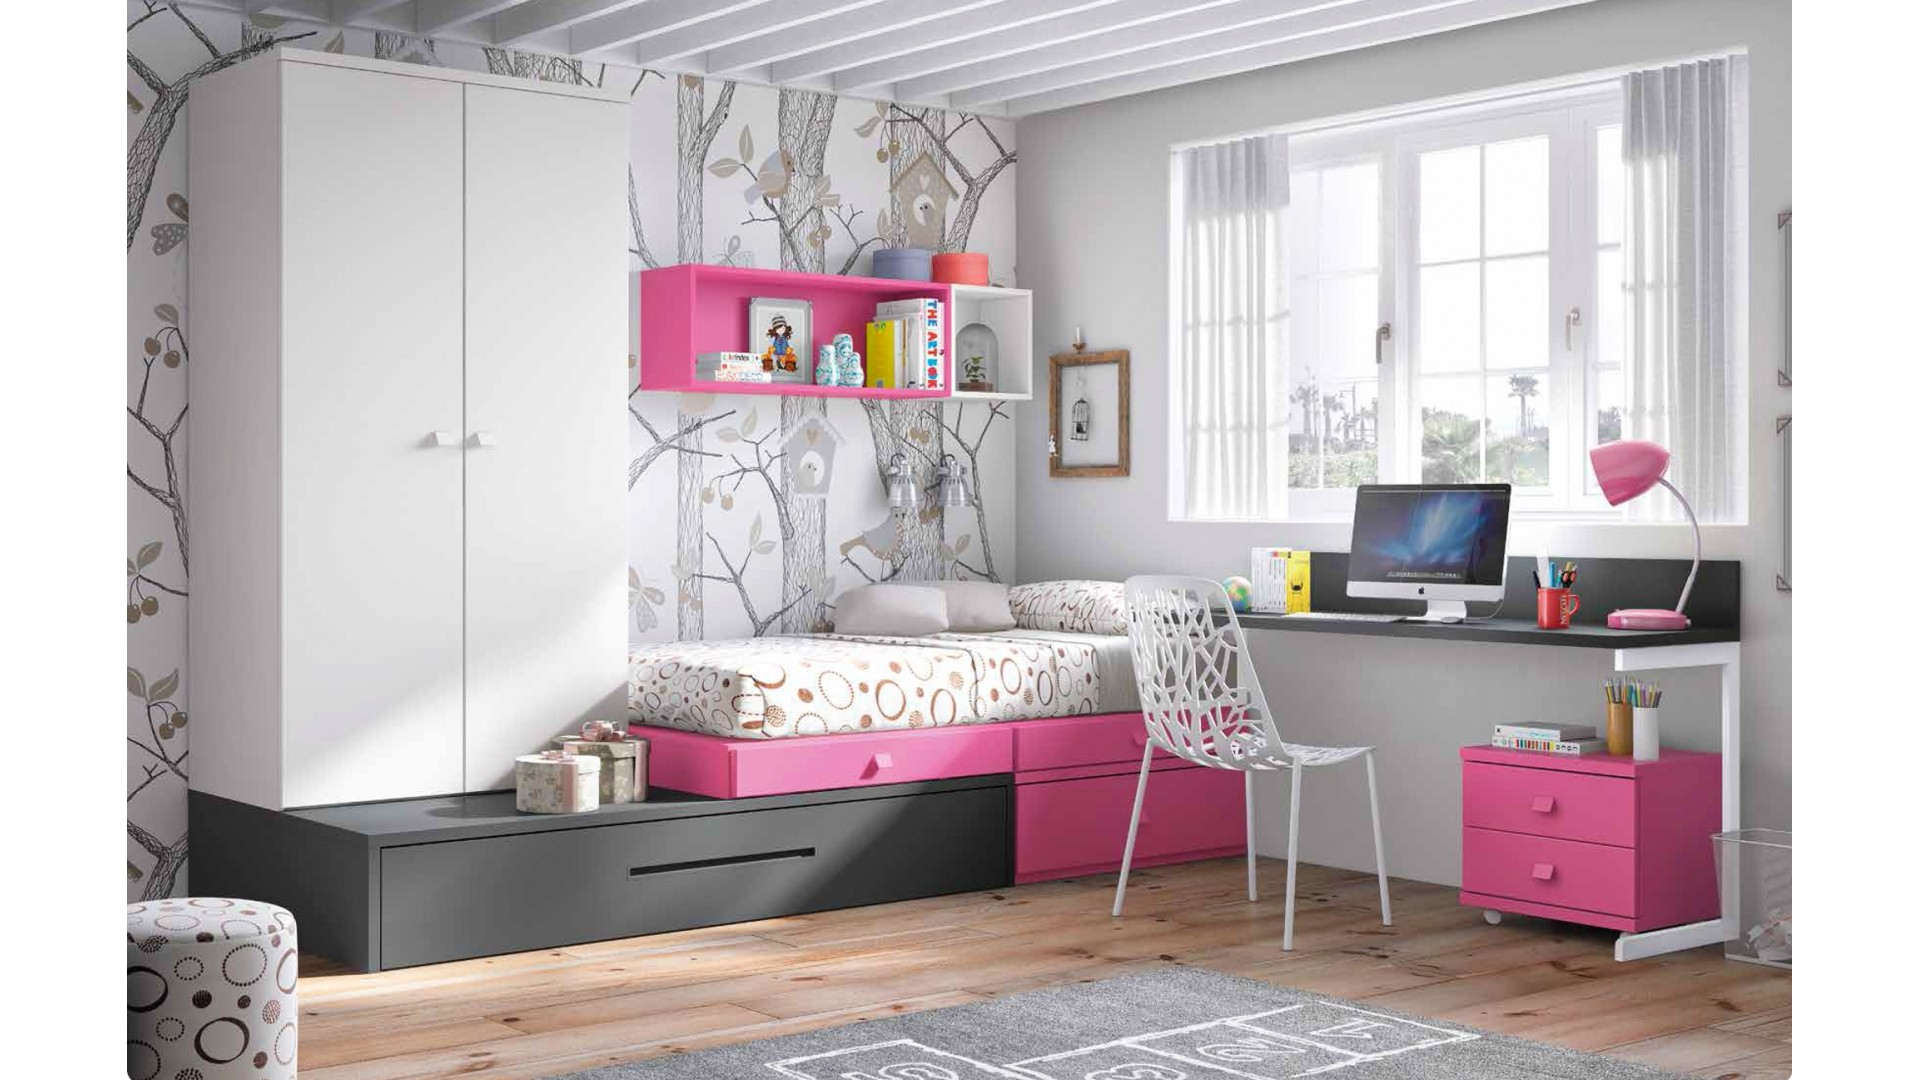 chambre enfant complete personnaliser girly glicerio. Black Bedroom Furniture Sets. Home Design Ideas